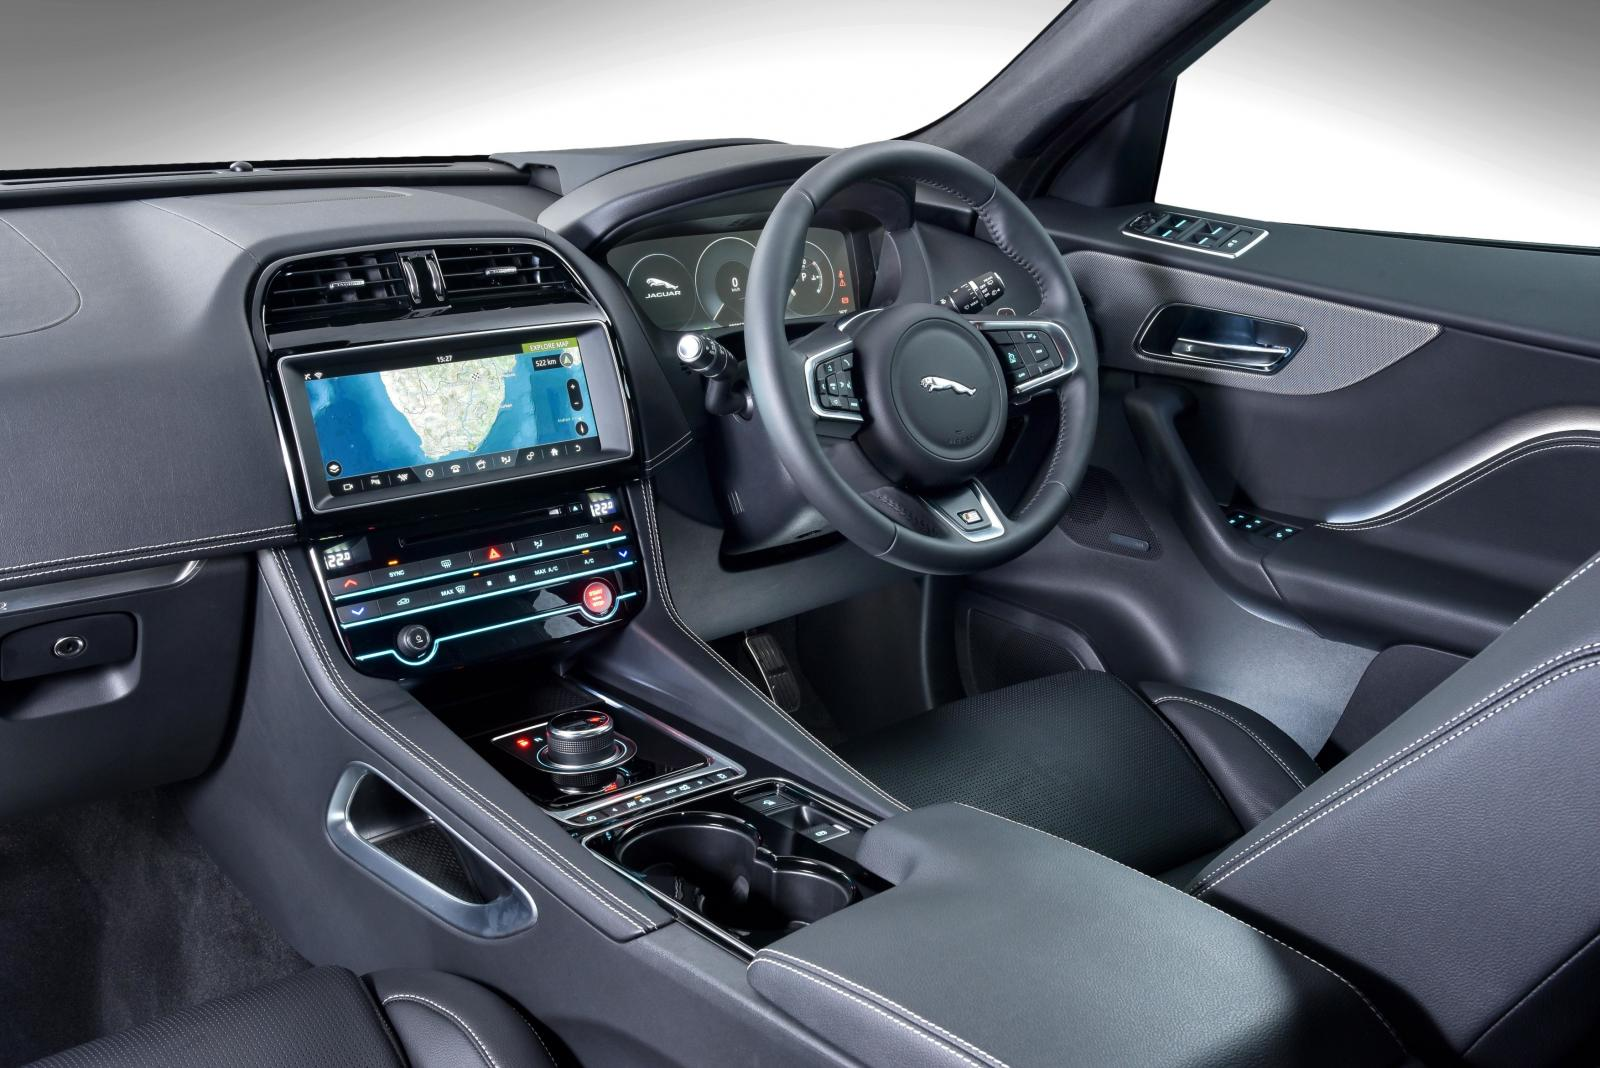 The Jaguar F PACE, The First SUV Produced By The Coventry Based Luxury  Marque And A Runner Up In The Premium SUV Category Of The 2016/17  Cars.co.za Consumer ...